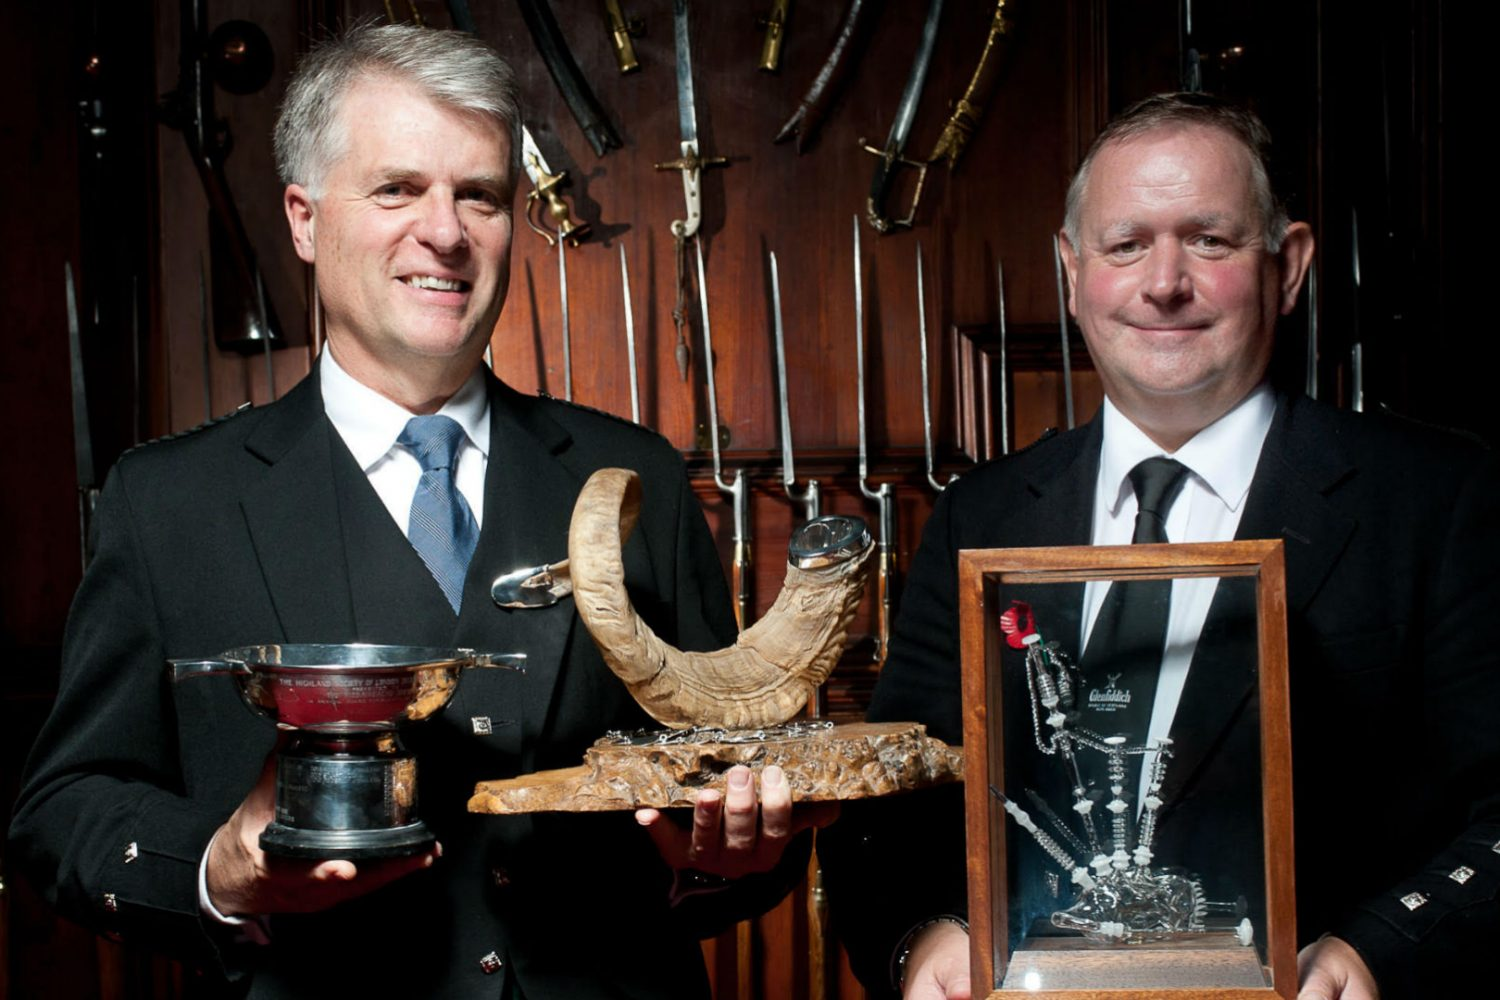 Jack Lee and Roddy MacLeod, winners of the Glenfiddich Piping Championship 2017